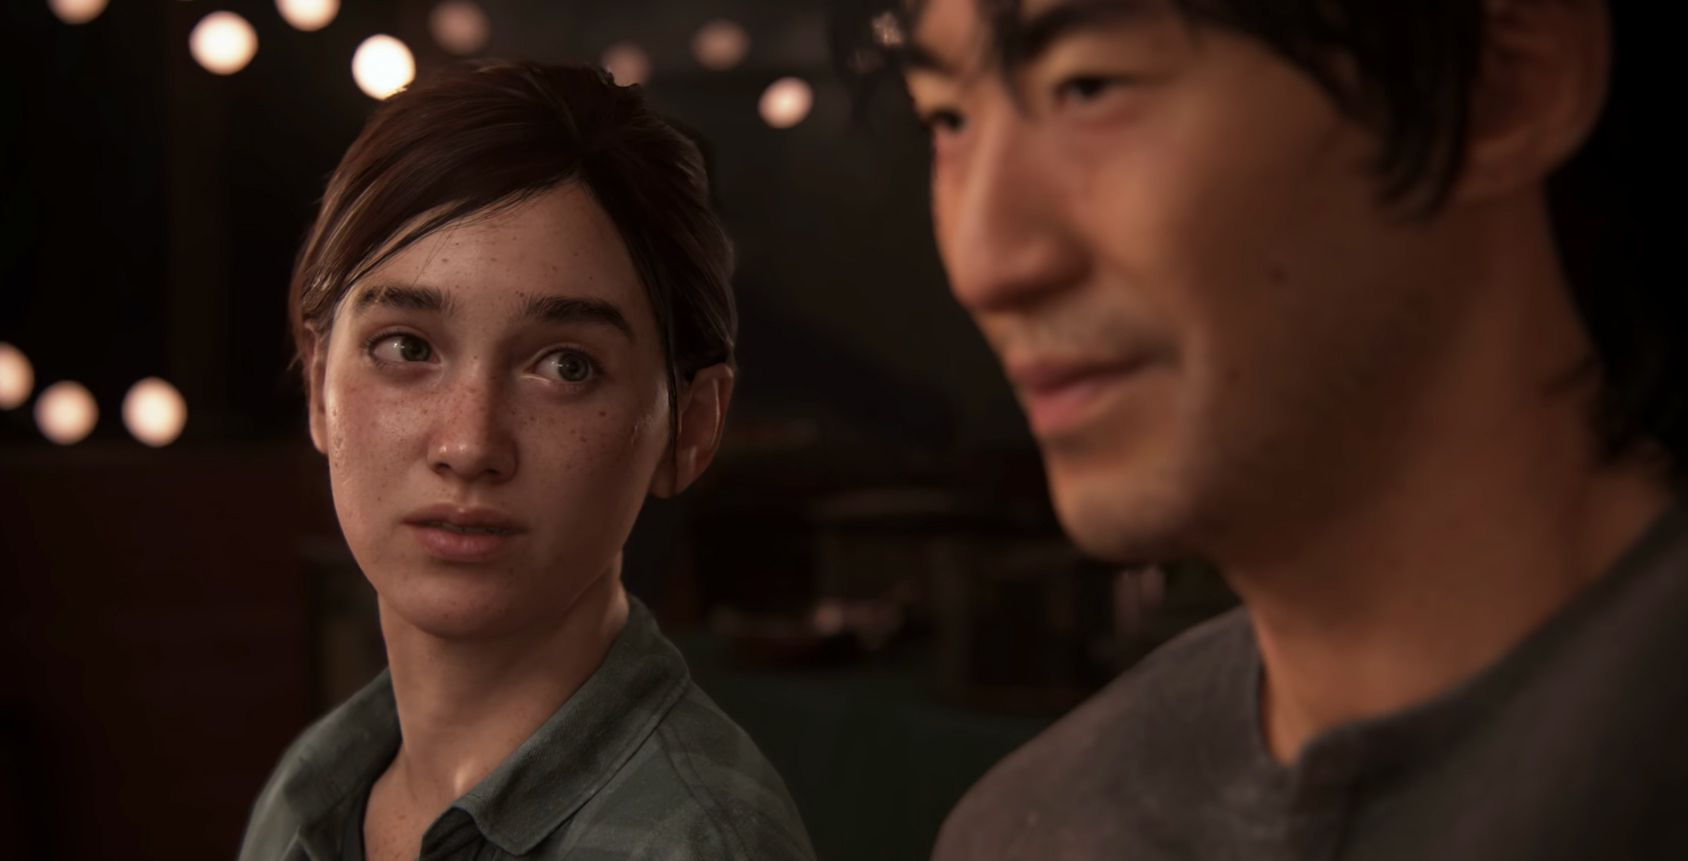 the last of us 2 coraggio ellie naughty dog v11 39247 - Quando un videogioco diventa realtà: The Last of Us Parte II (Prima parte)